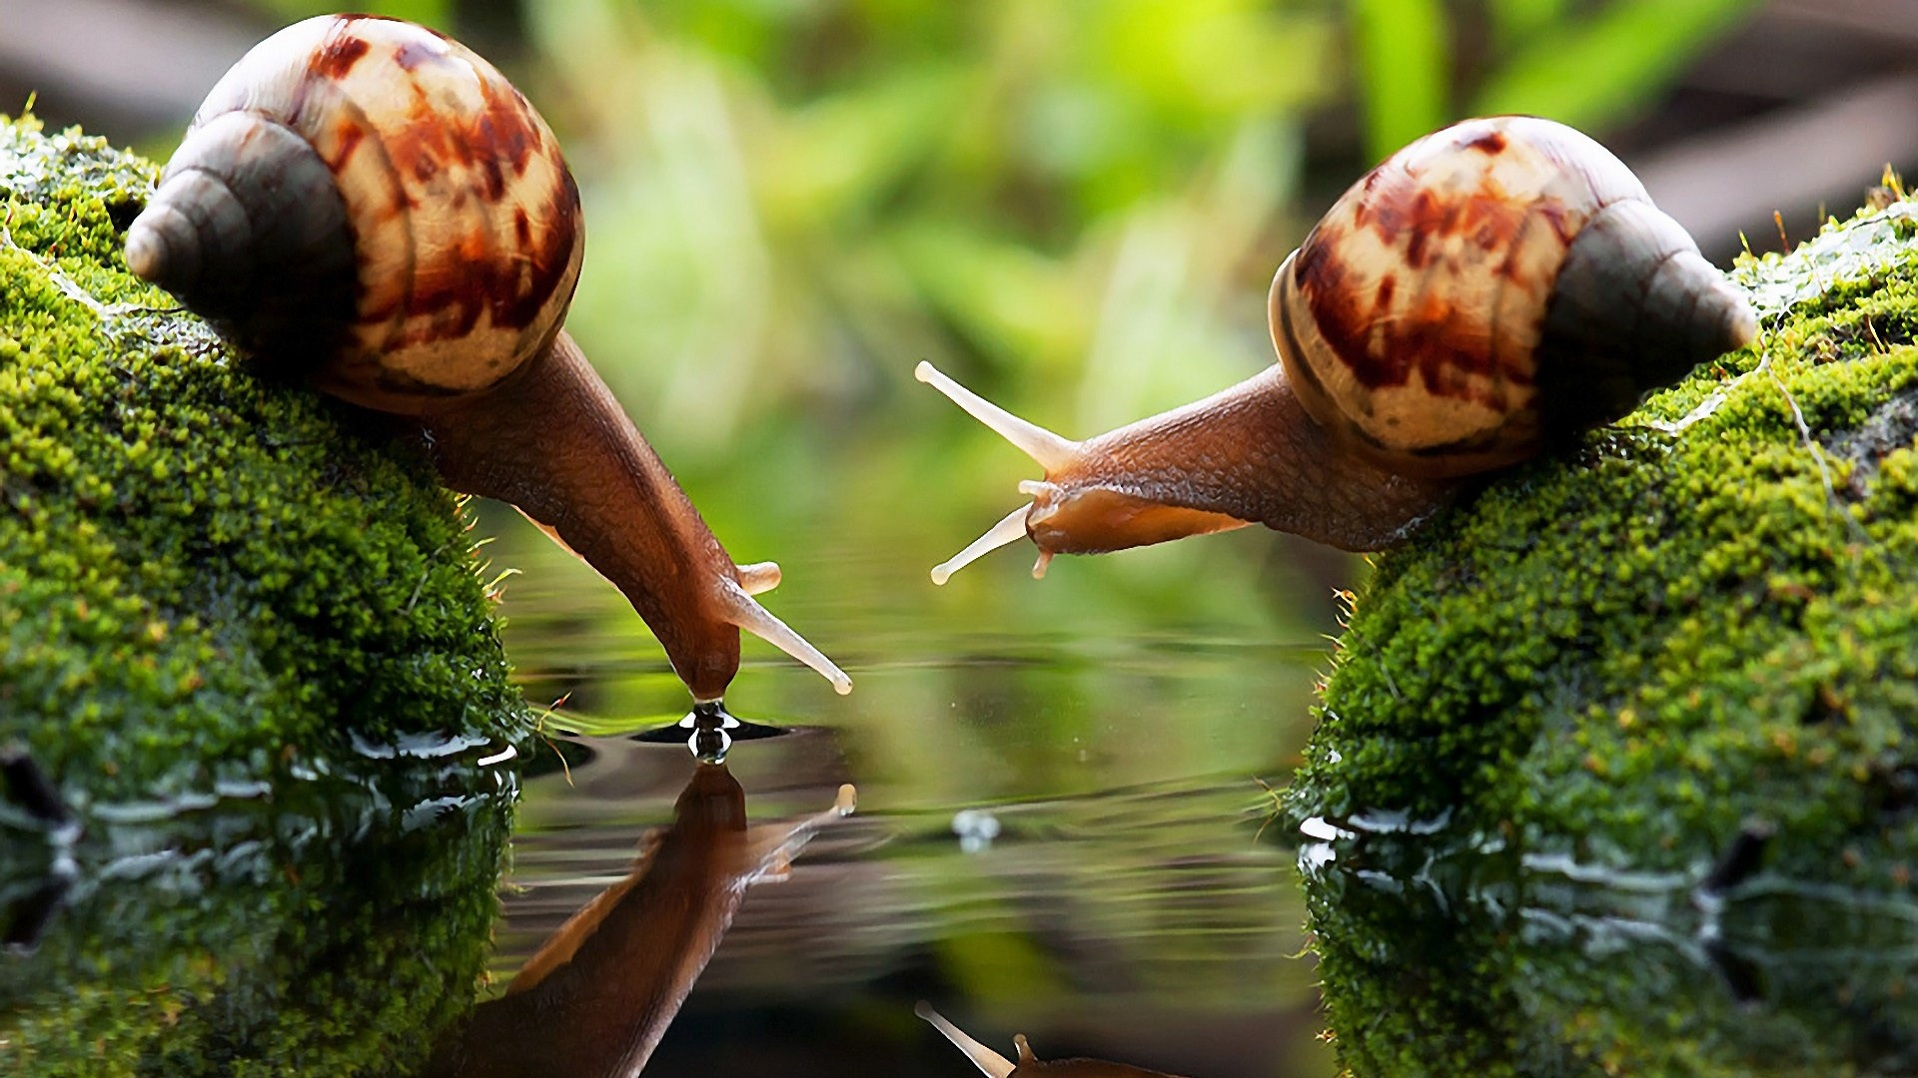 snail macro photography free wallpapers backgrounds PHOTO SHARNG 1918x1078